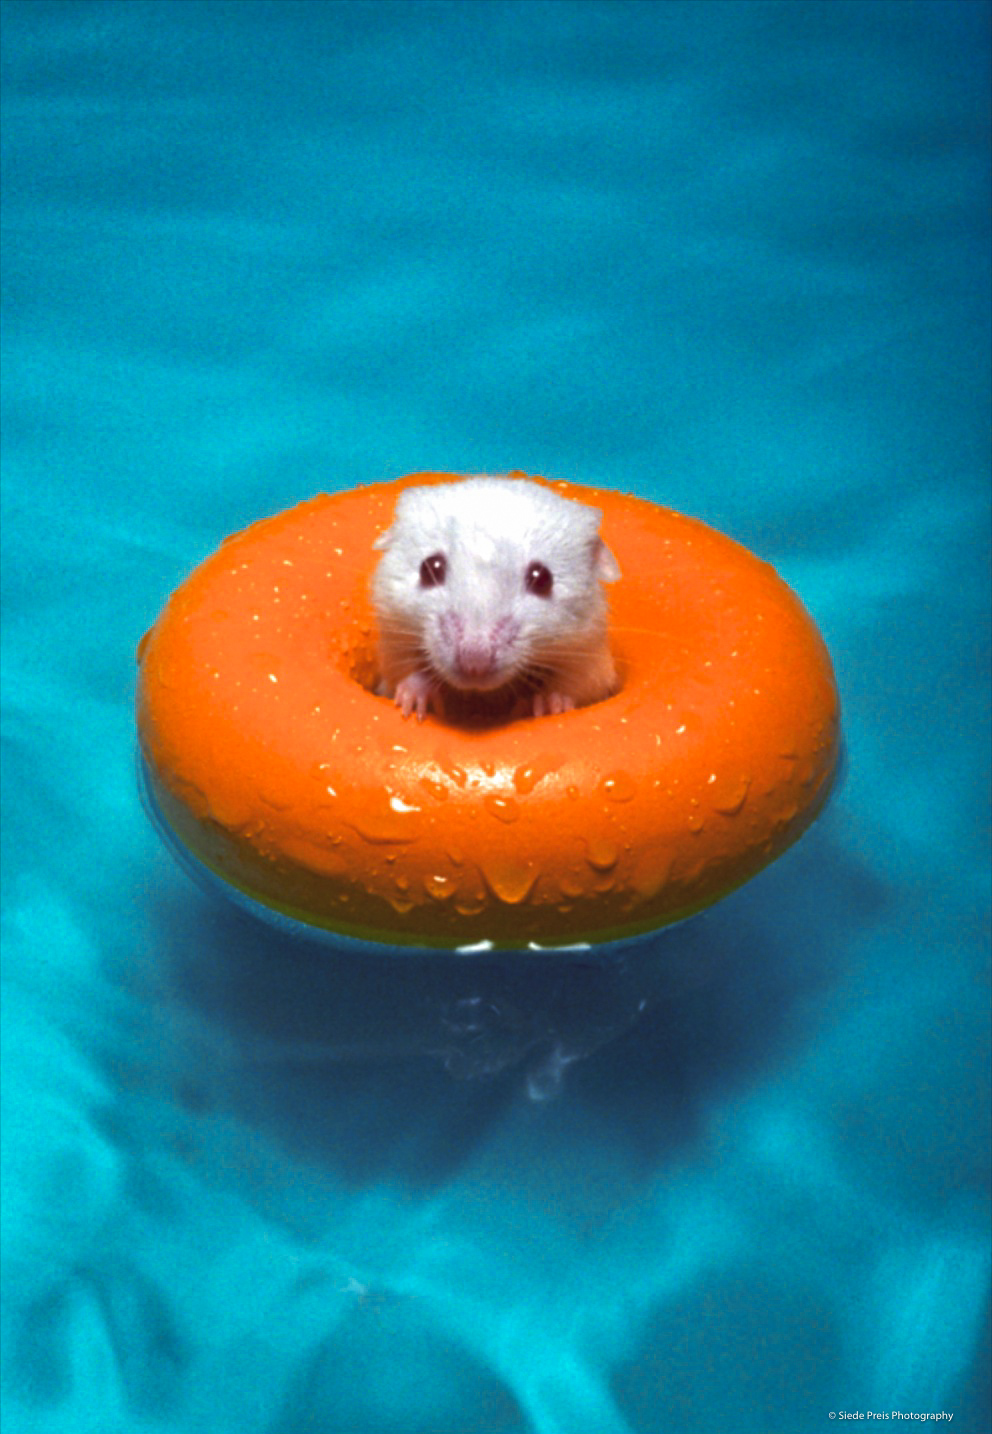 Siede-Preis-Photography-Mouse-Inner-Tube.jpg